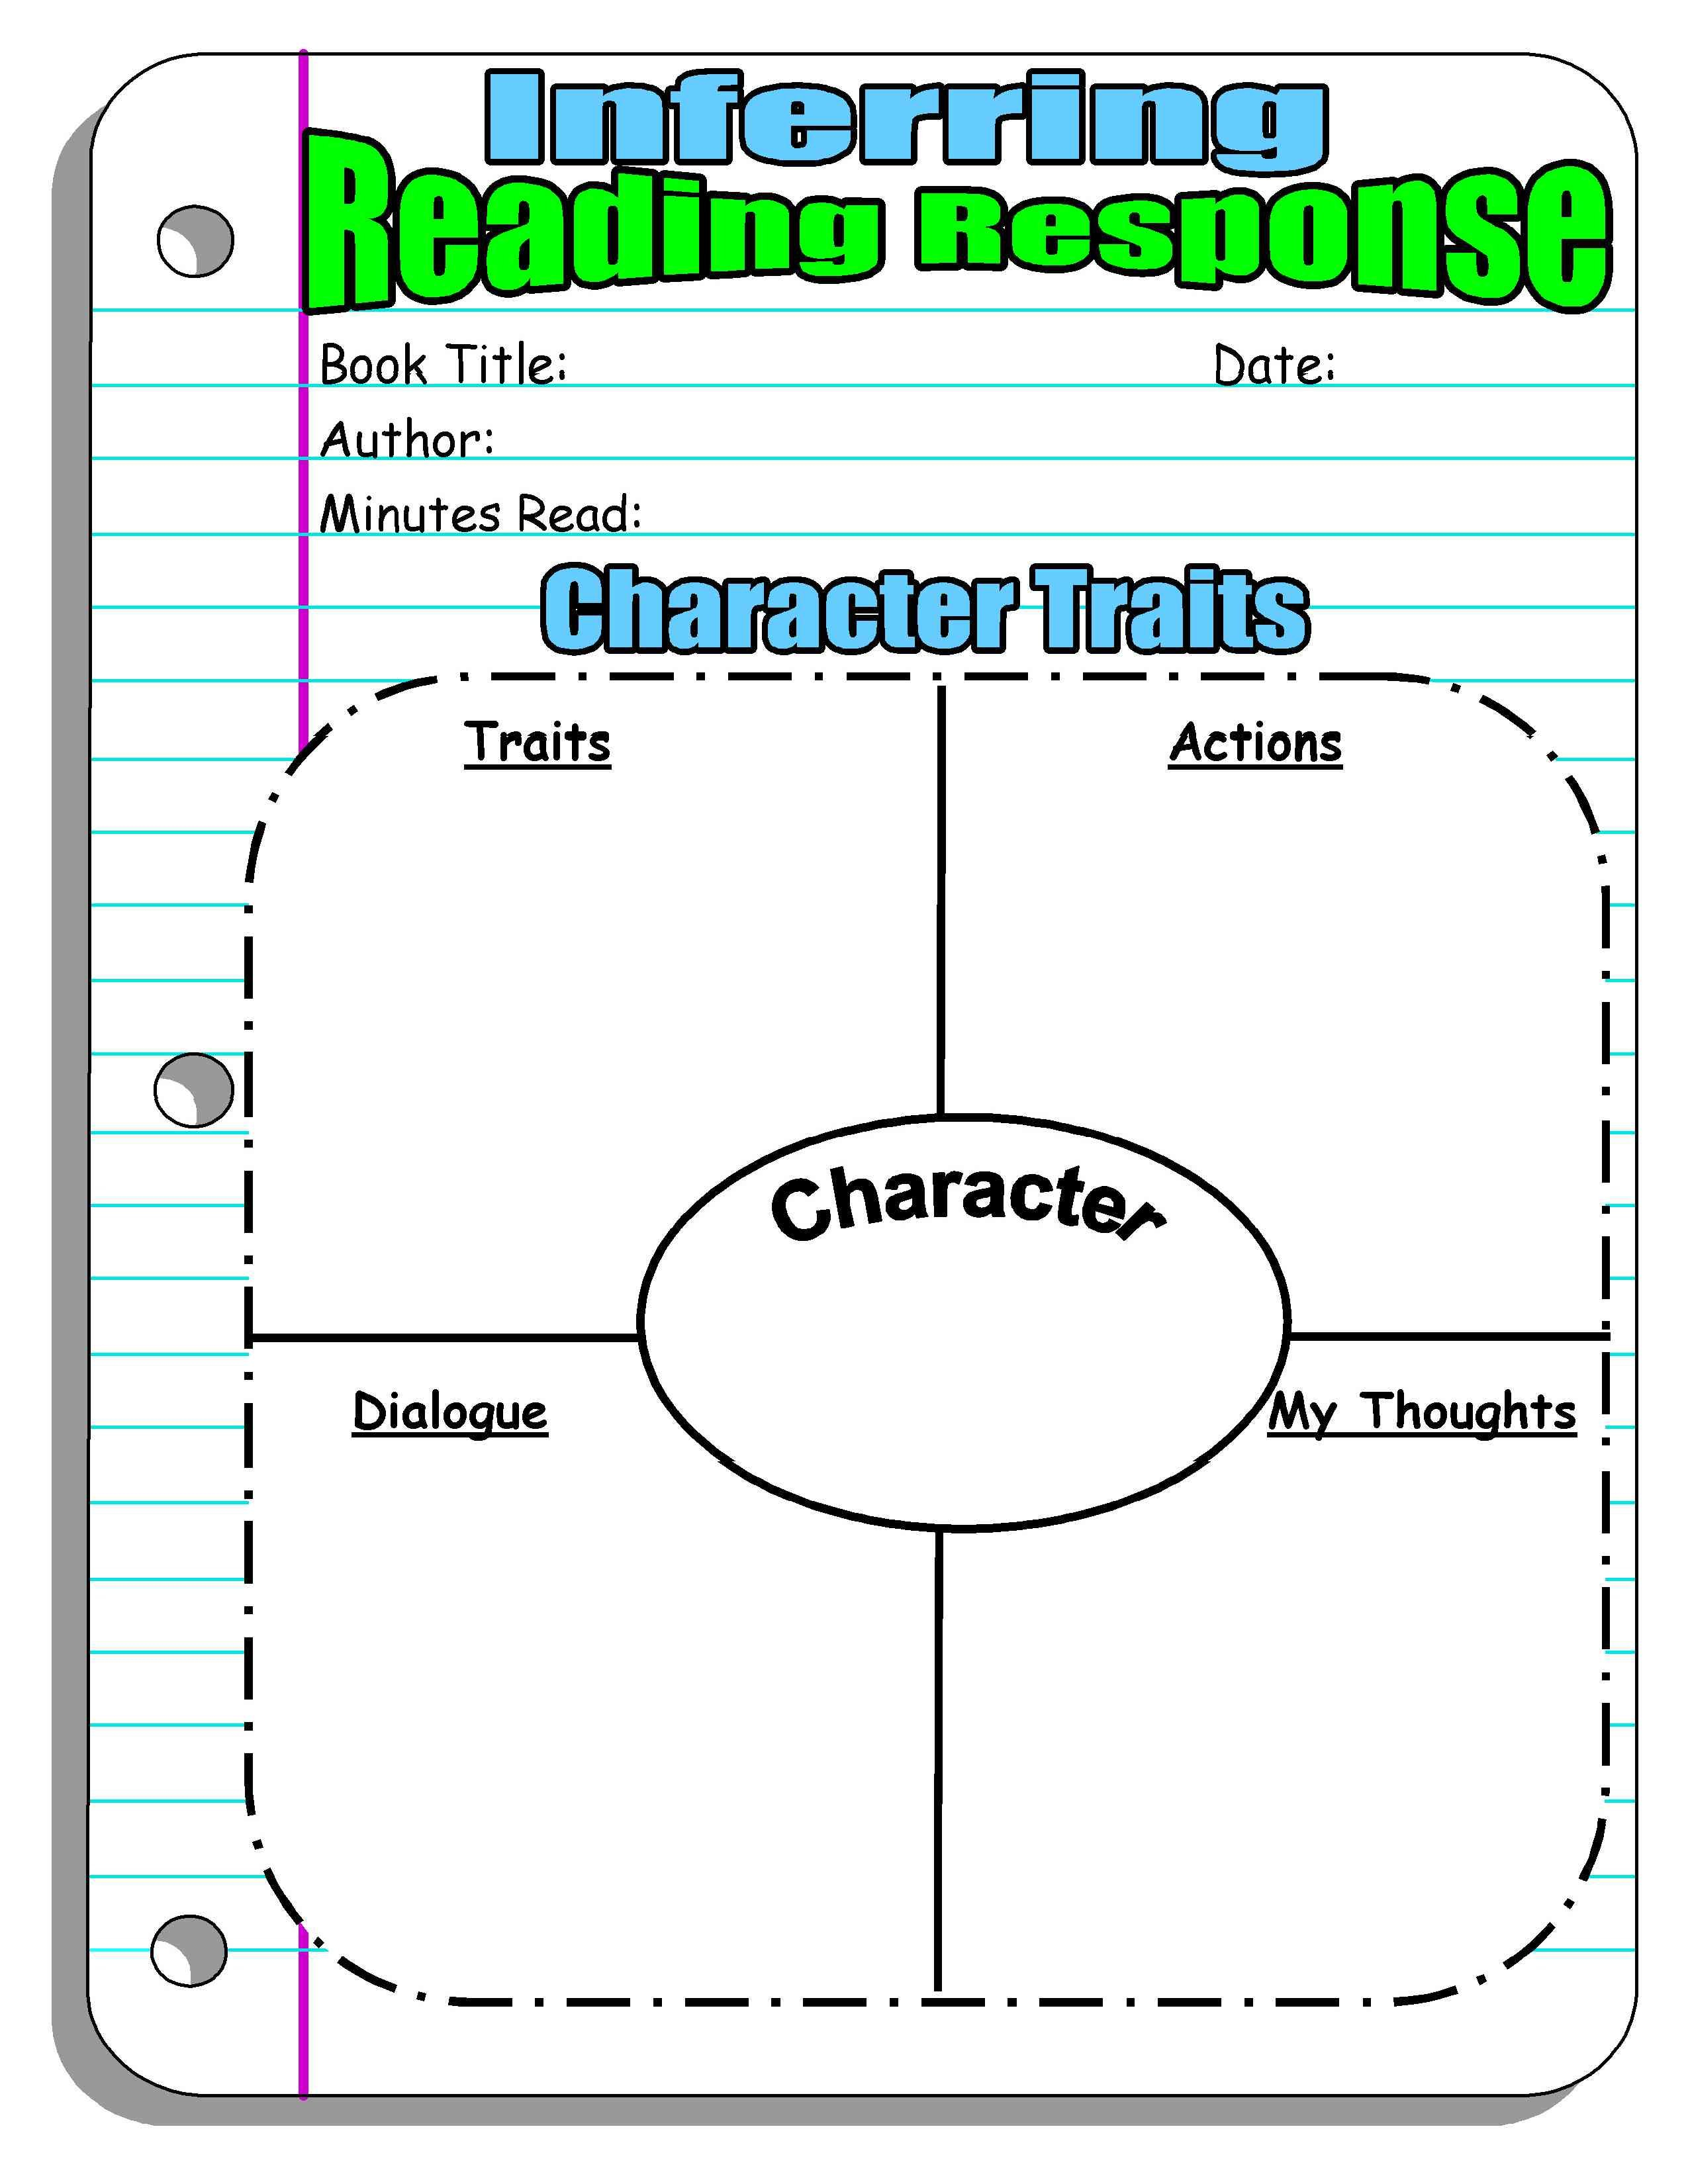 Reading Response Forms And Graphic Organizers  Scholastic For Race Writing Strategy Worksheet